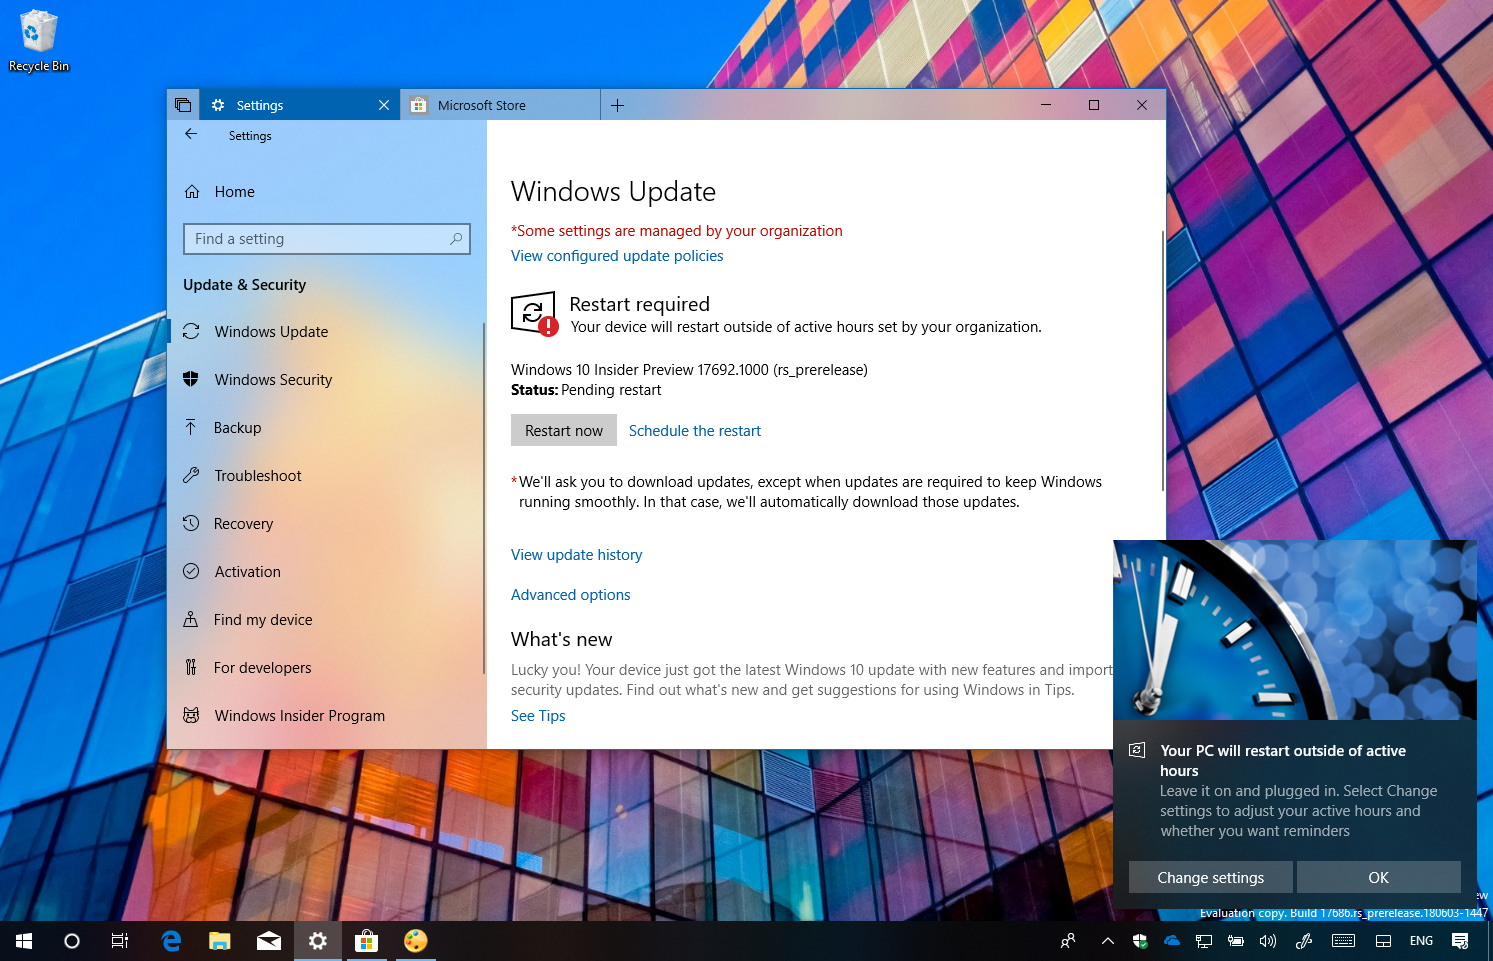 Windows 10 build 17692 new features